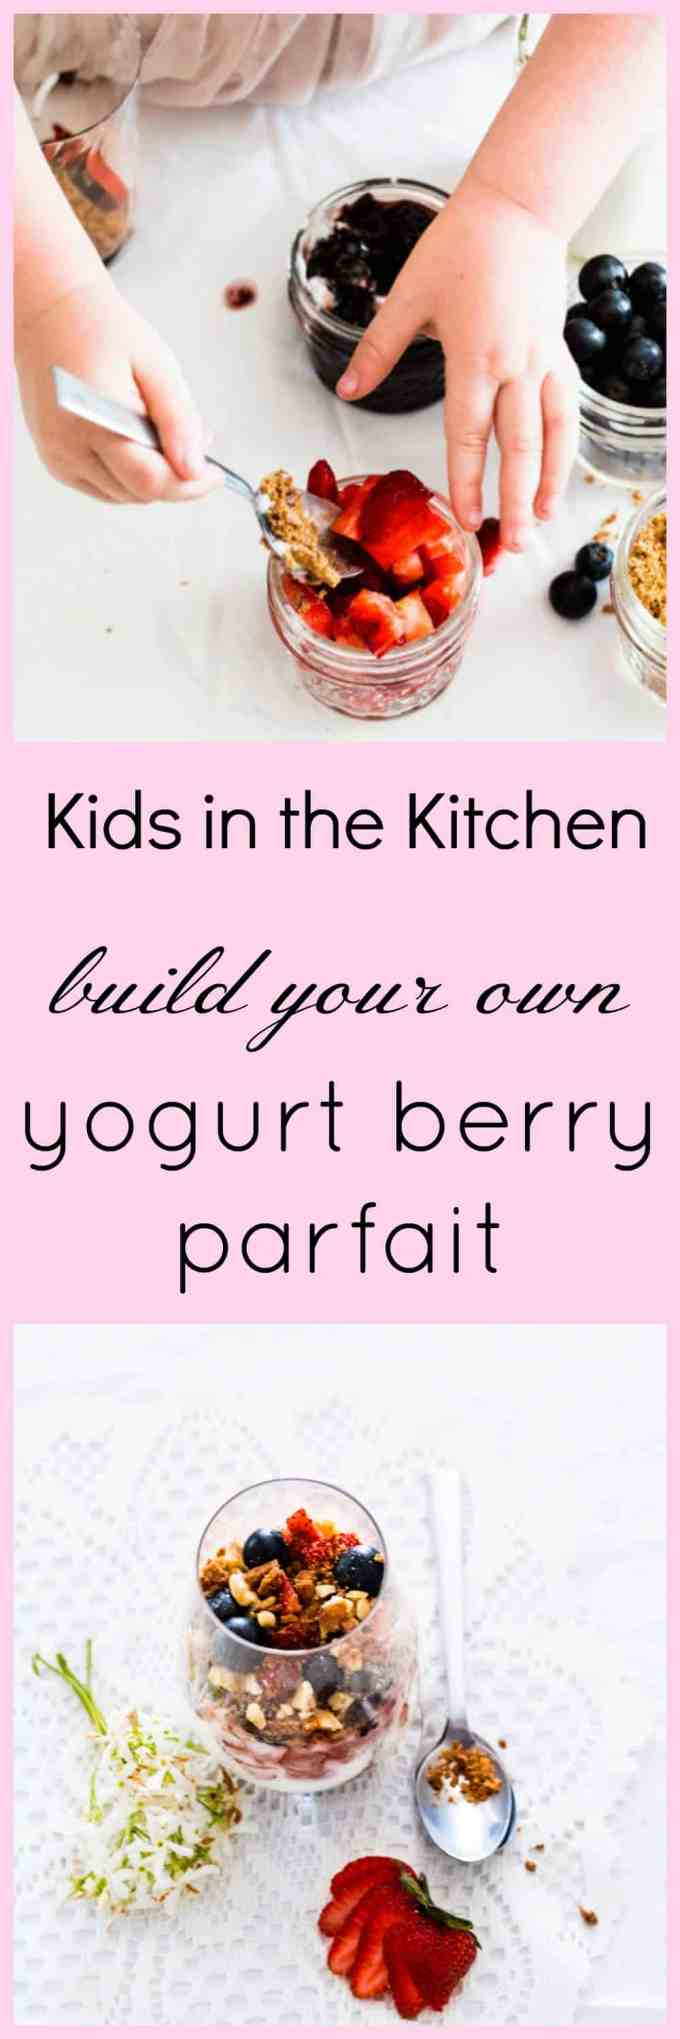 Get the kids in the kitchen to build their very own Yogurt Berry Parfait. A hands on activity to get the littles excited to cook and create their own meals